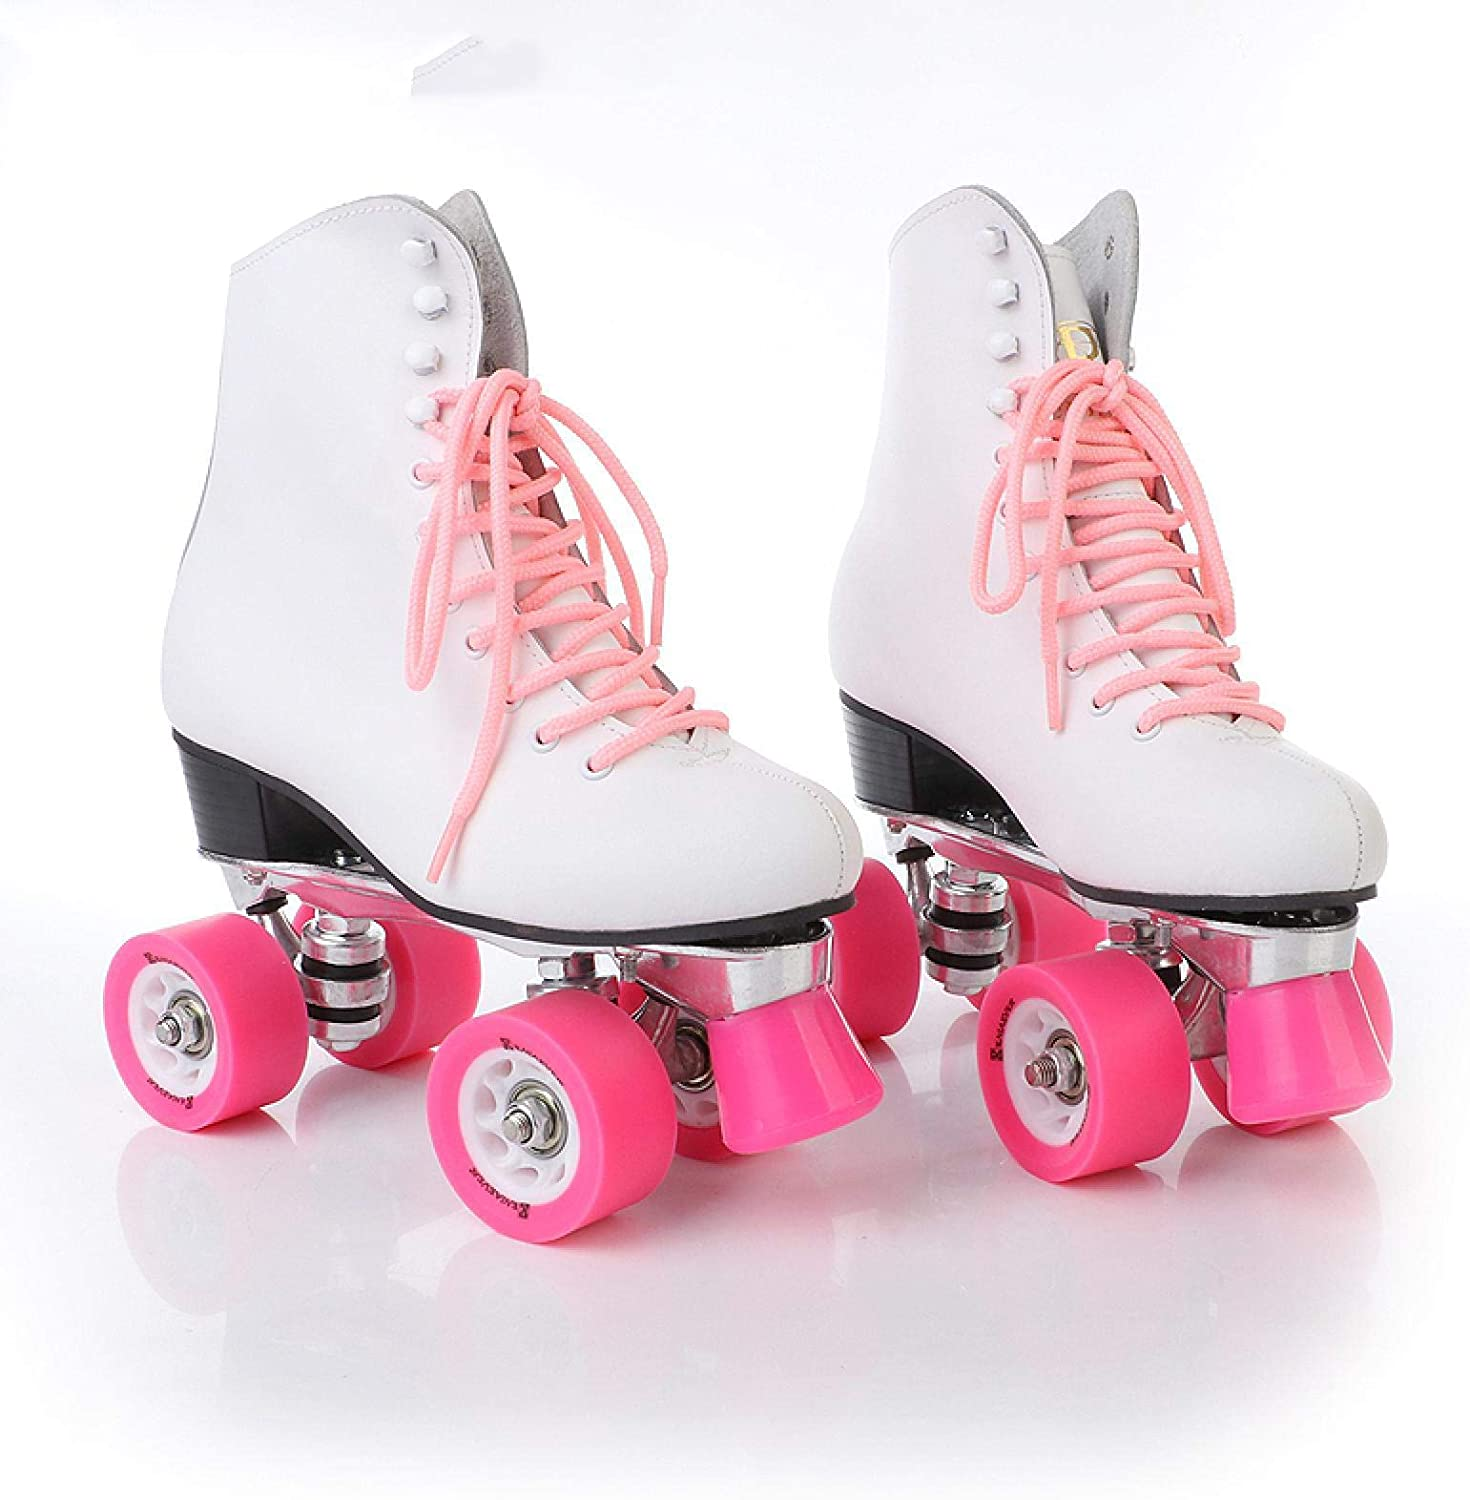 Cheap mail order sales Movement specialty shop Double Row Roller Skates Out and Indoor 4